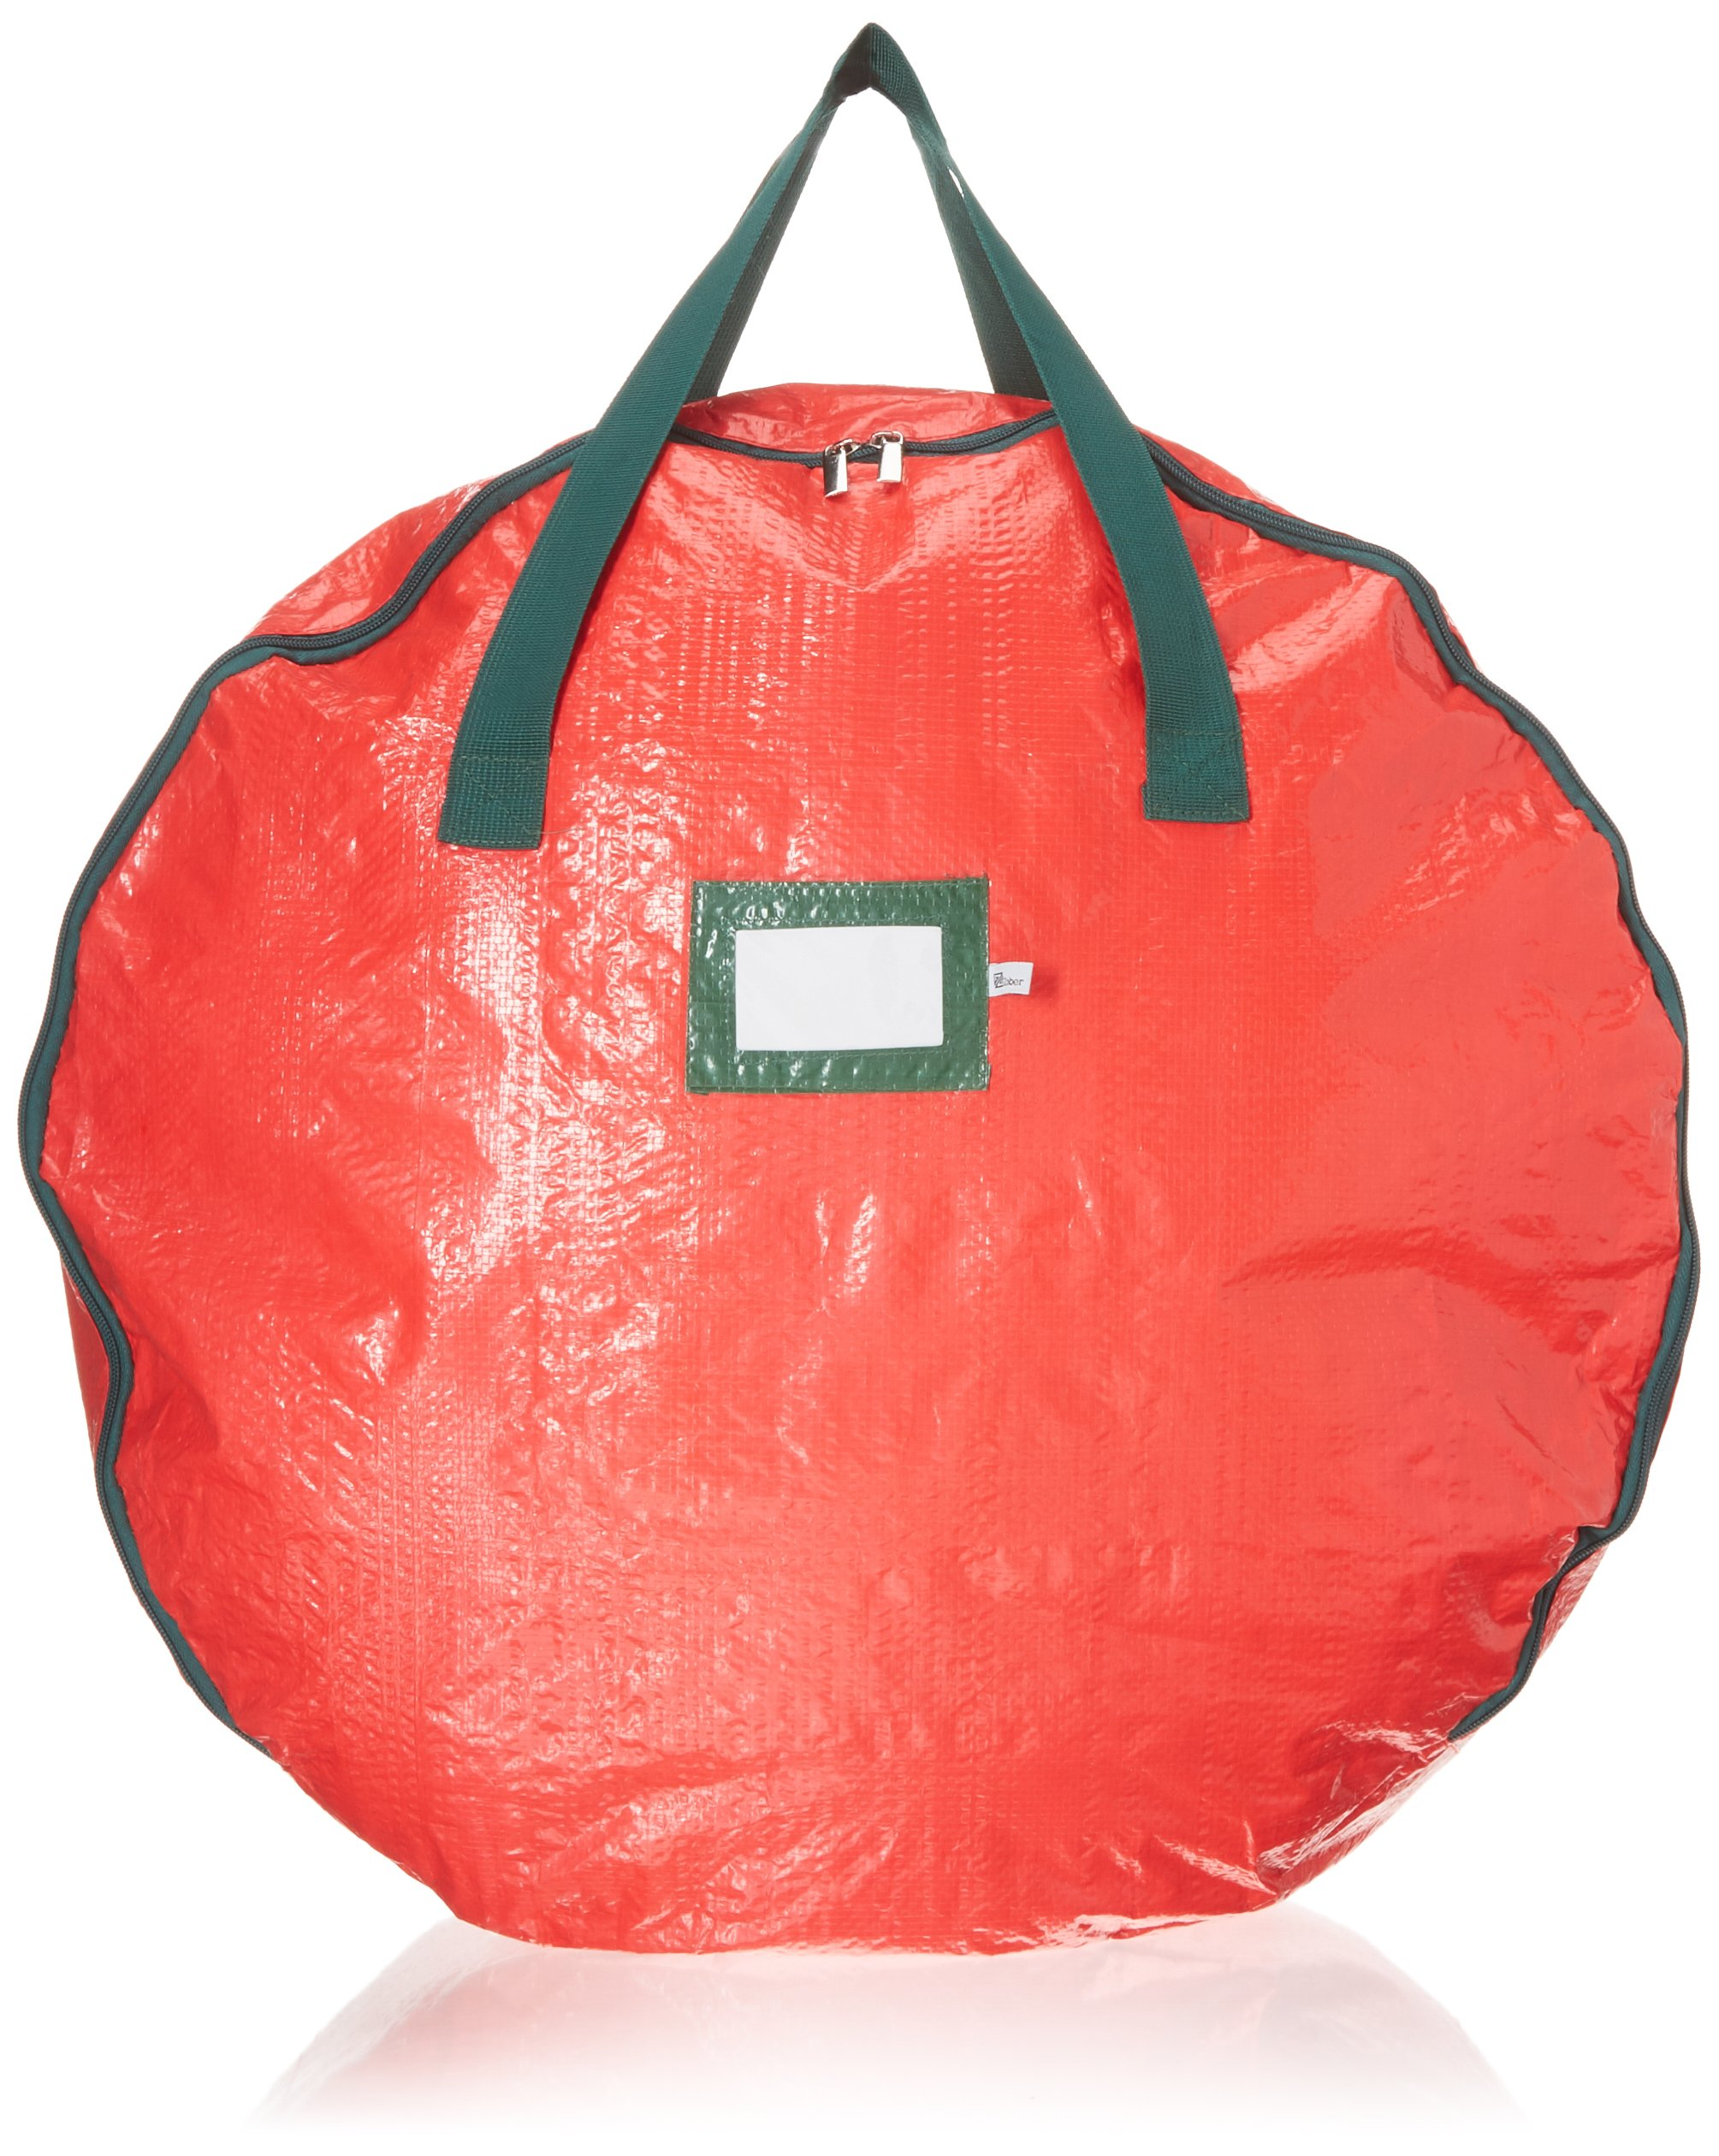 Christmas Wreath Storage Bag 24''-Tear Resistant Zippered Bag with Reinforced Handles -24 x 24 x 7 (RED)